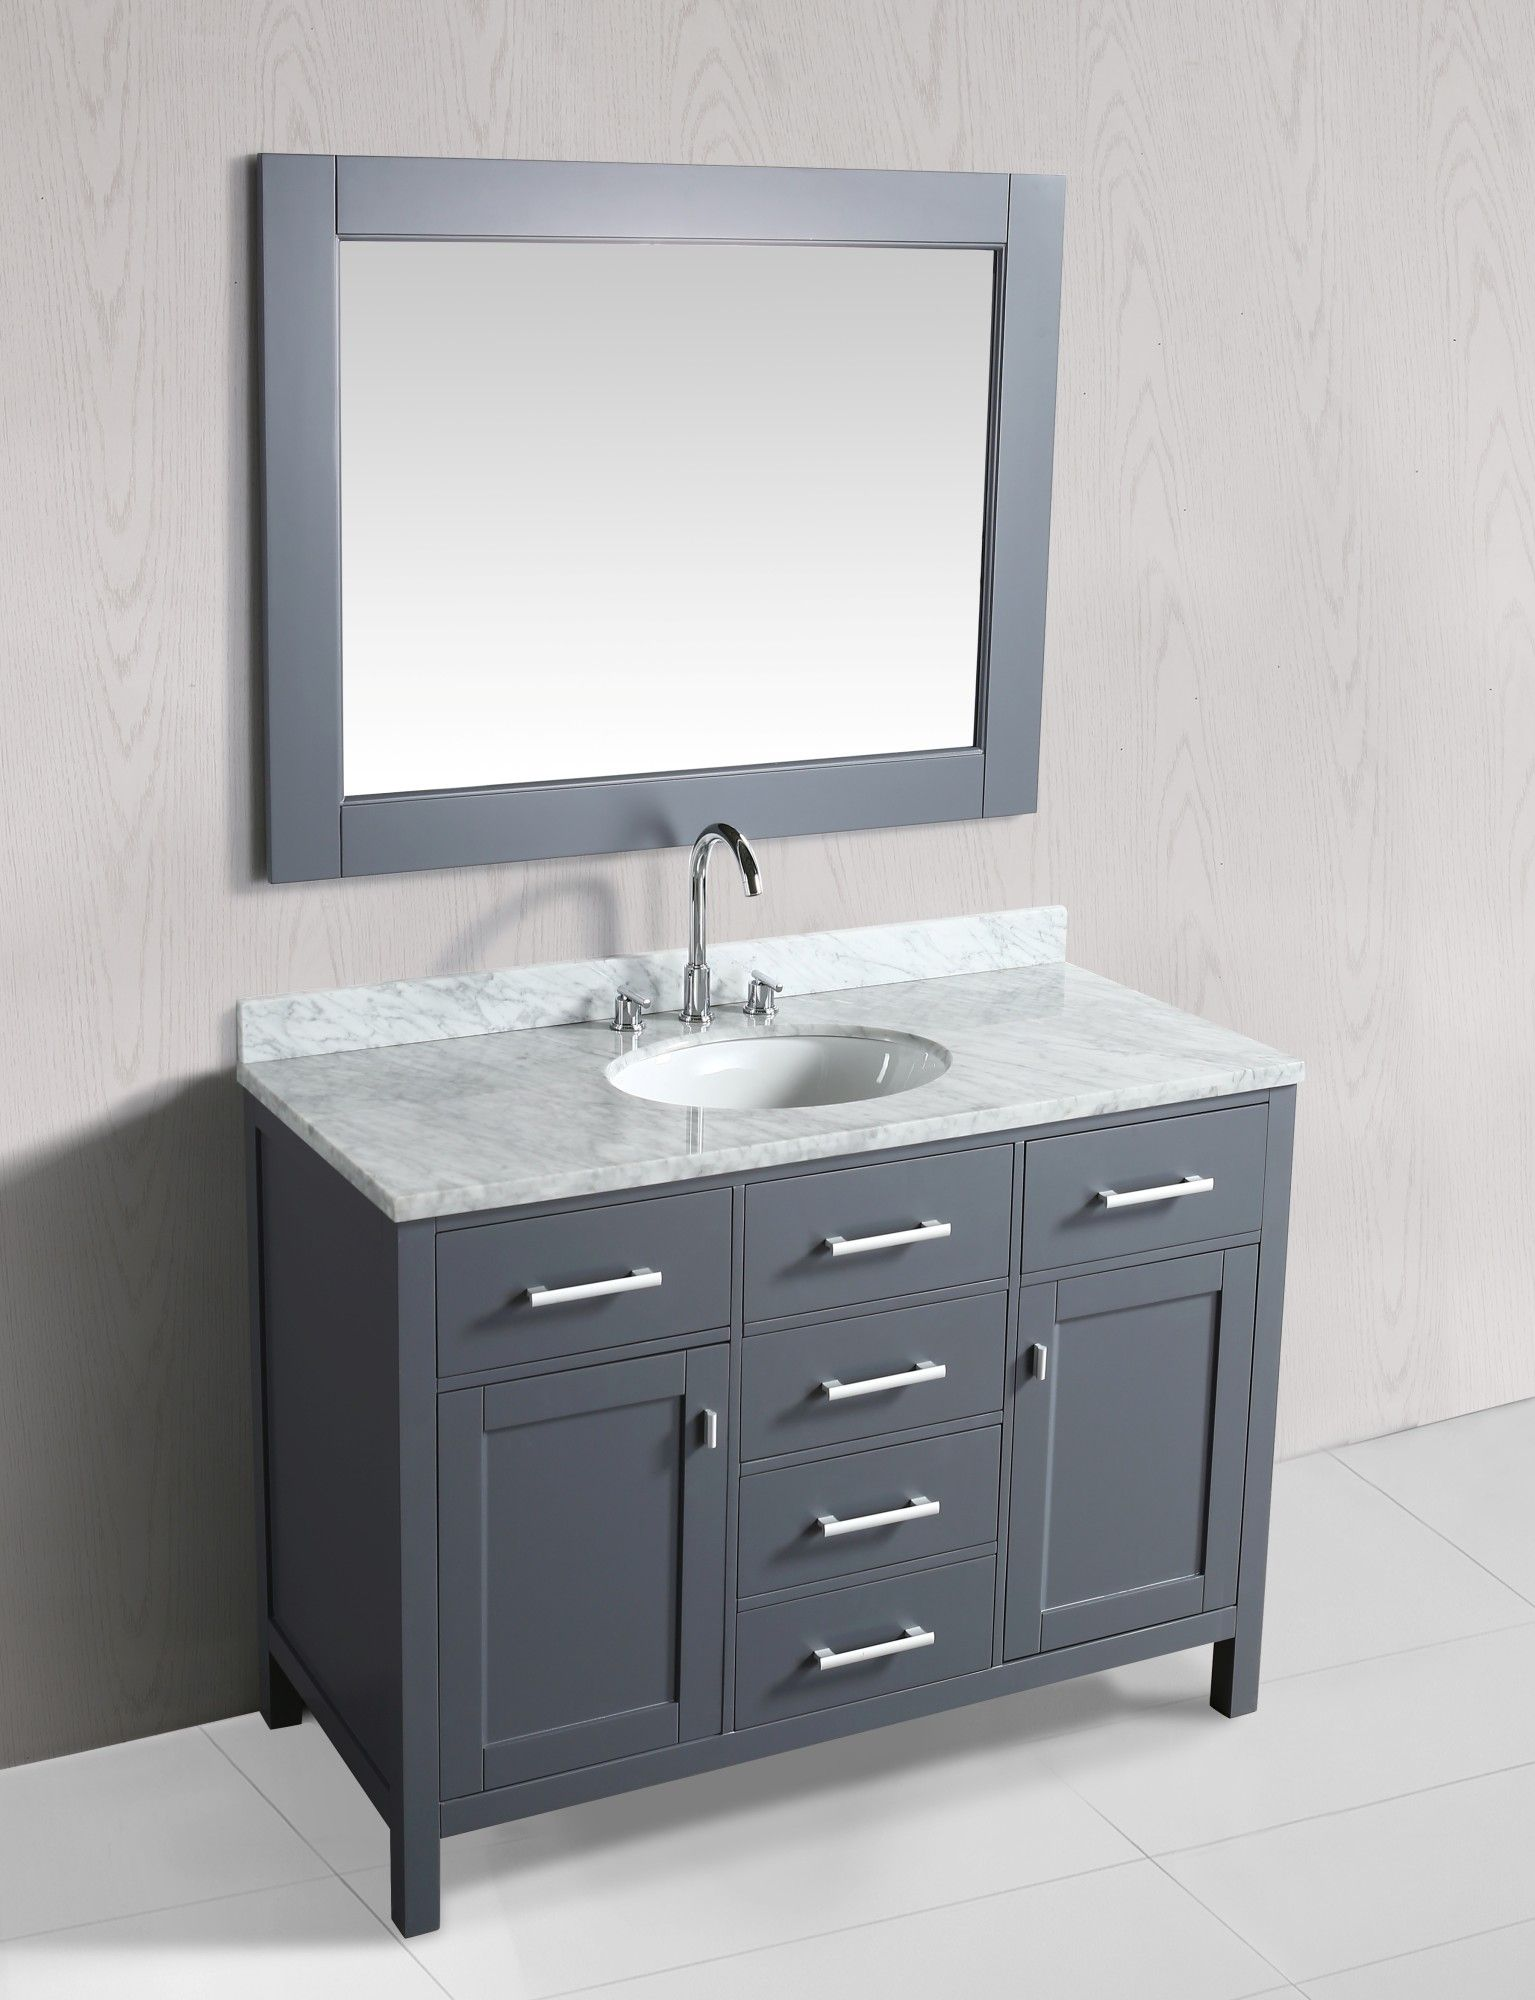 21 Alluring Bathroom Marble Vanity To Make Bathroom Look Amazing Stunninghomedecor Com Marble Bathroom Stylish Bathroom Bathroom Vanity Tops